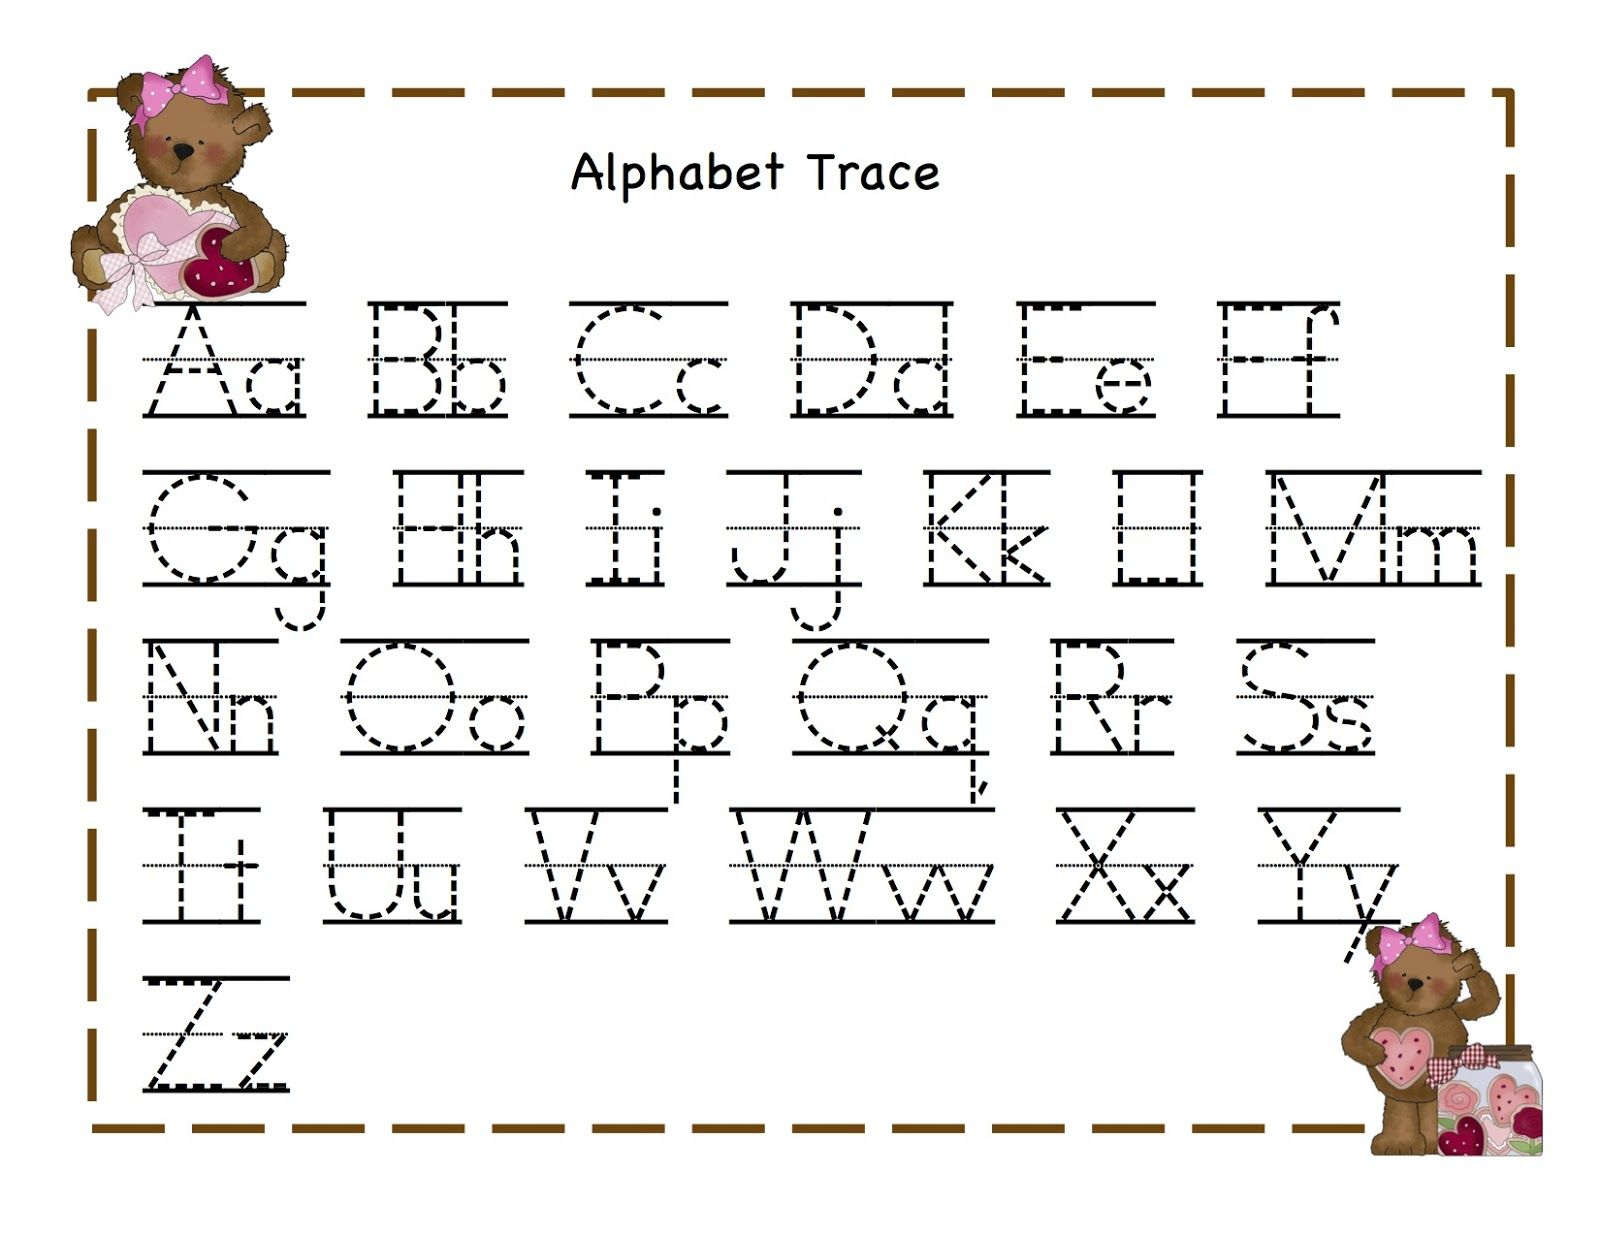 Worksheet Alphabet Letters To Trace trace alphabet letters teddy printable pinterest teddy